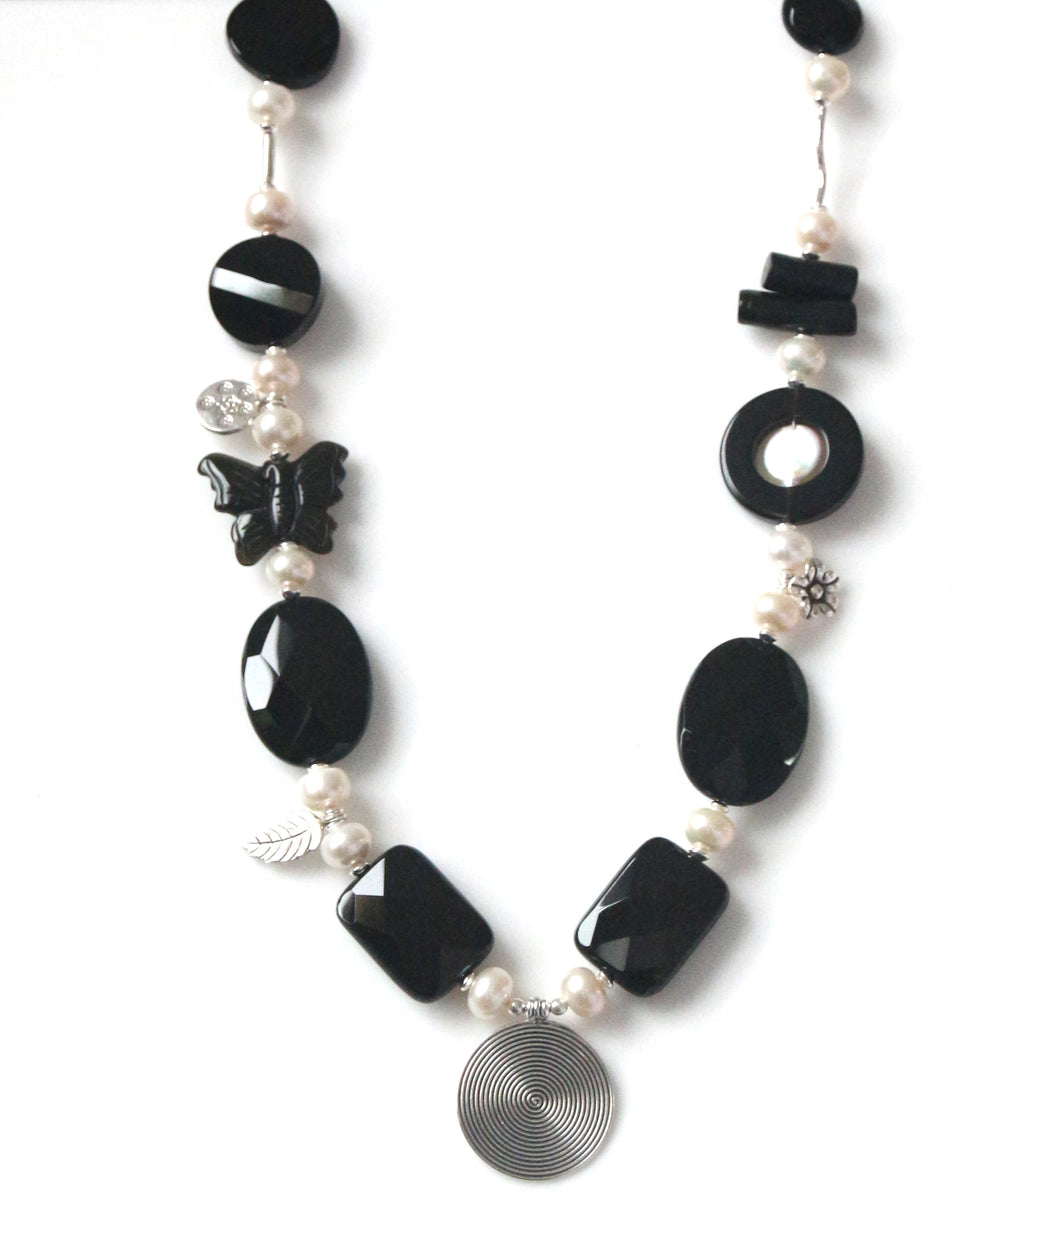 Australian Handmade Black Necklace with Onyx Obsidian Natural Black Coral Pearls and Sterling Silver